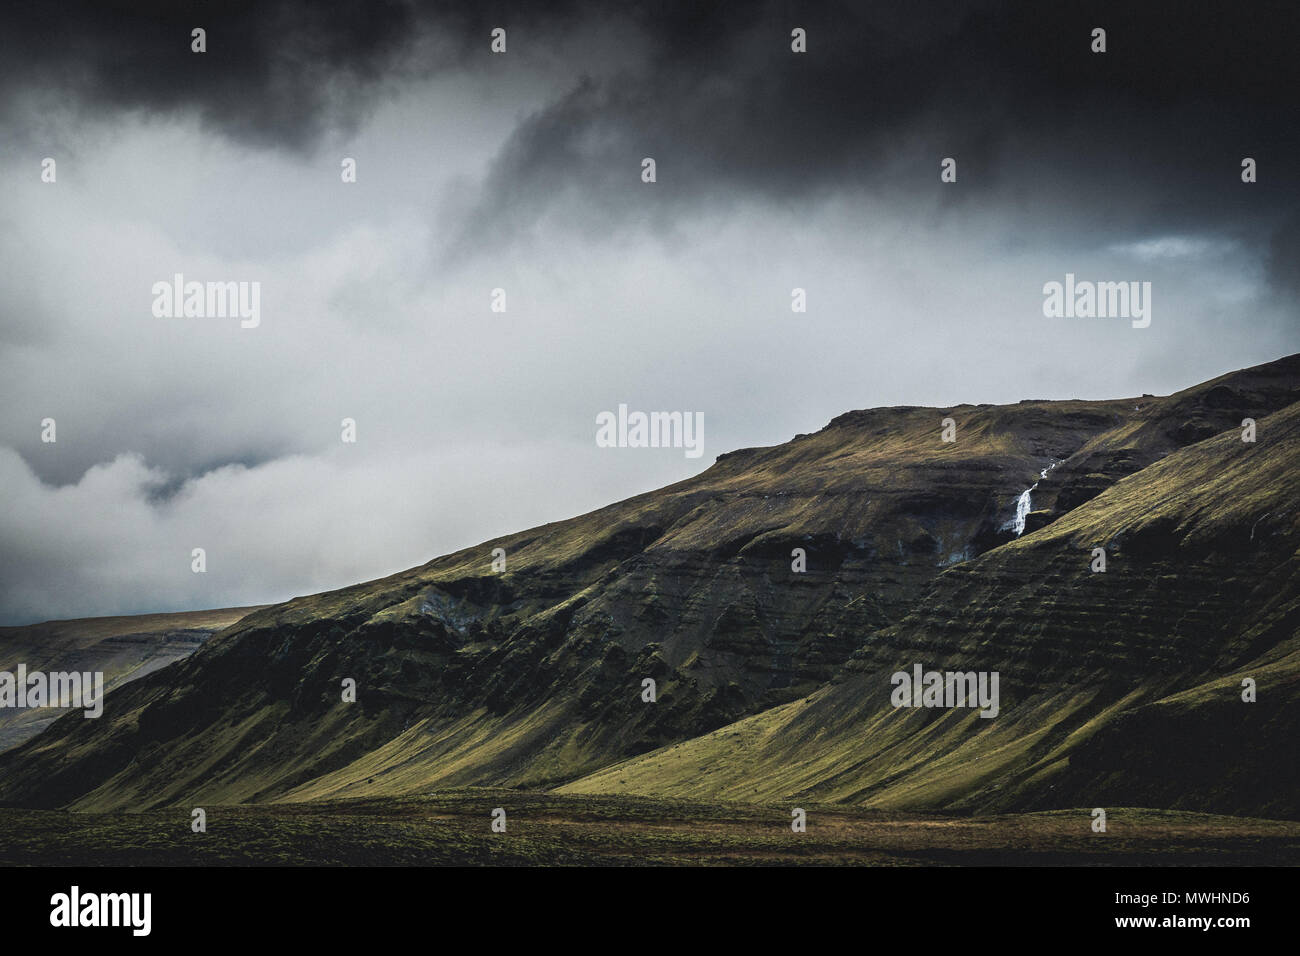 a typical landscape in the Icelandic Highlands. - Stock Image